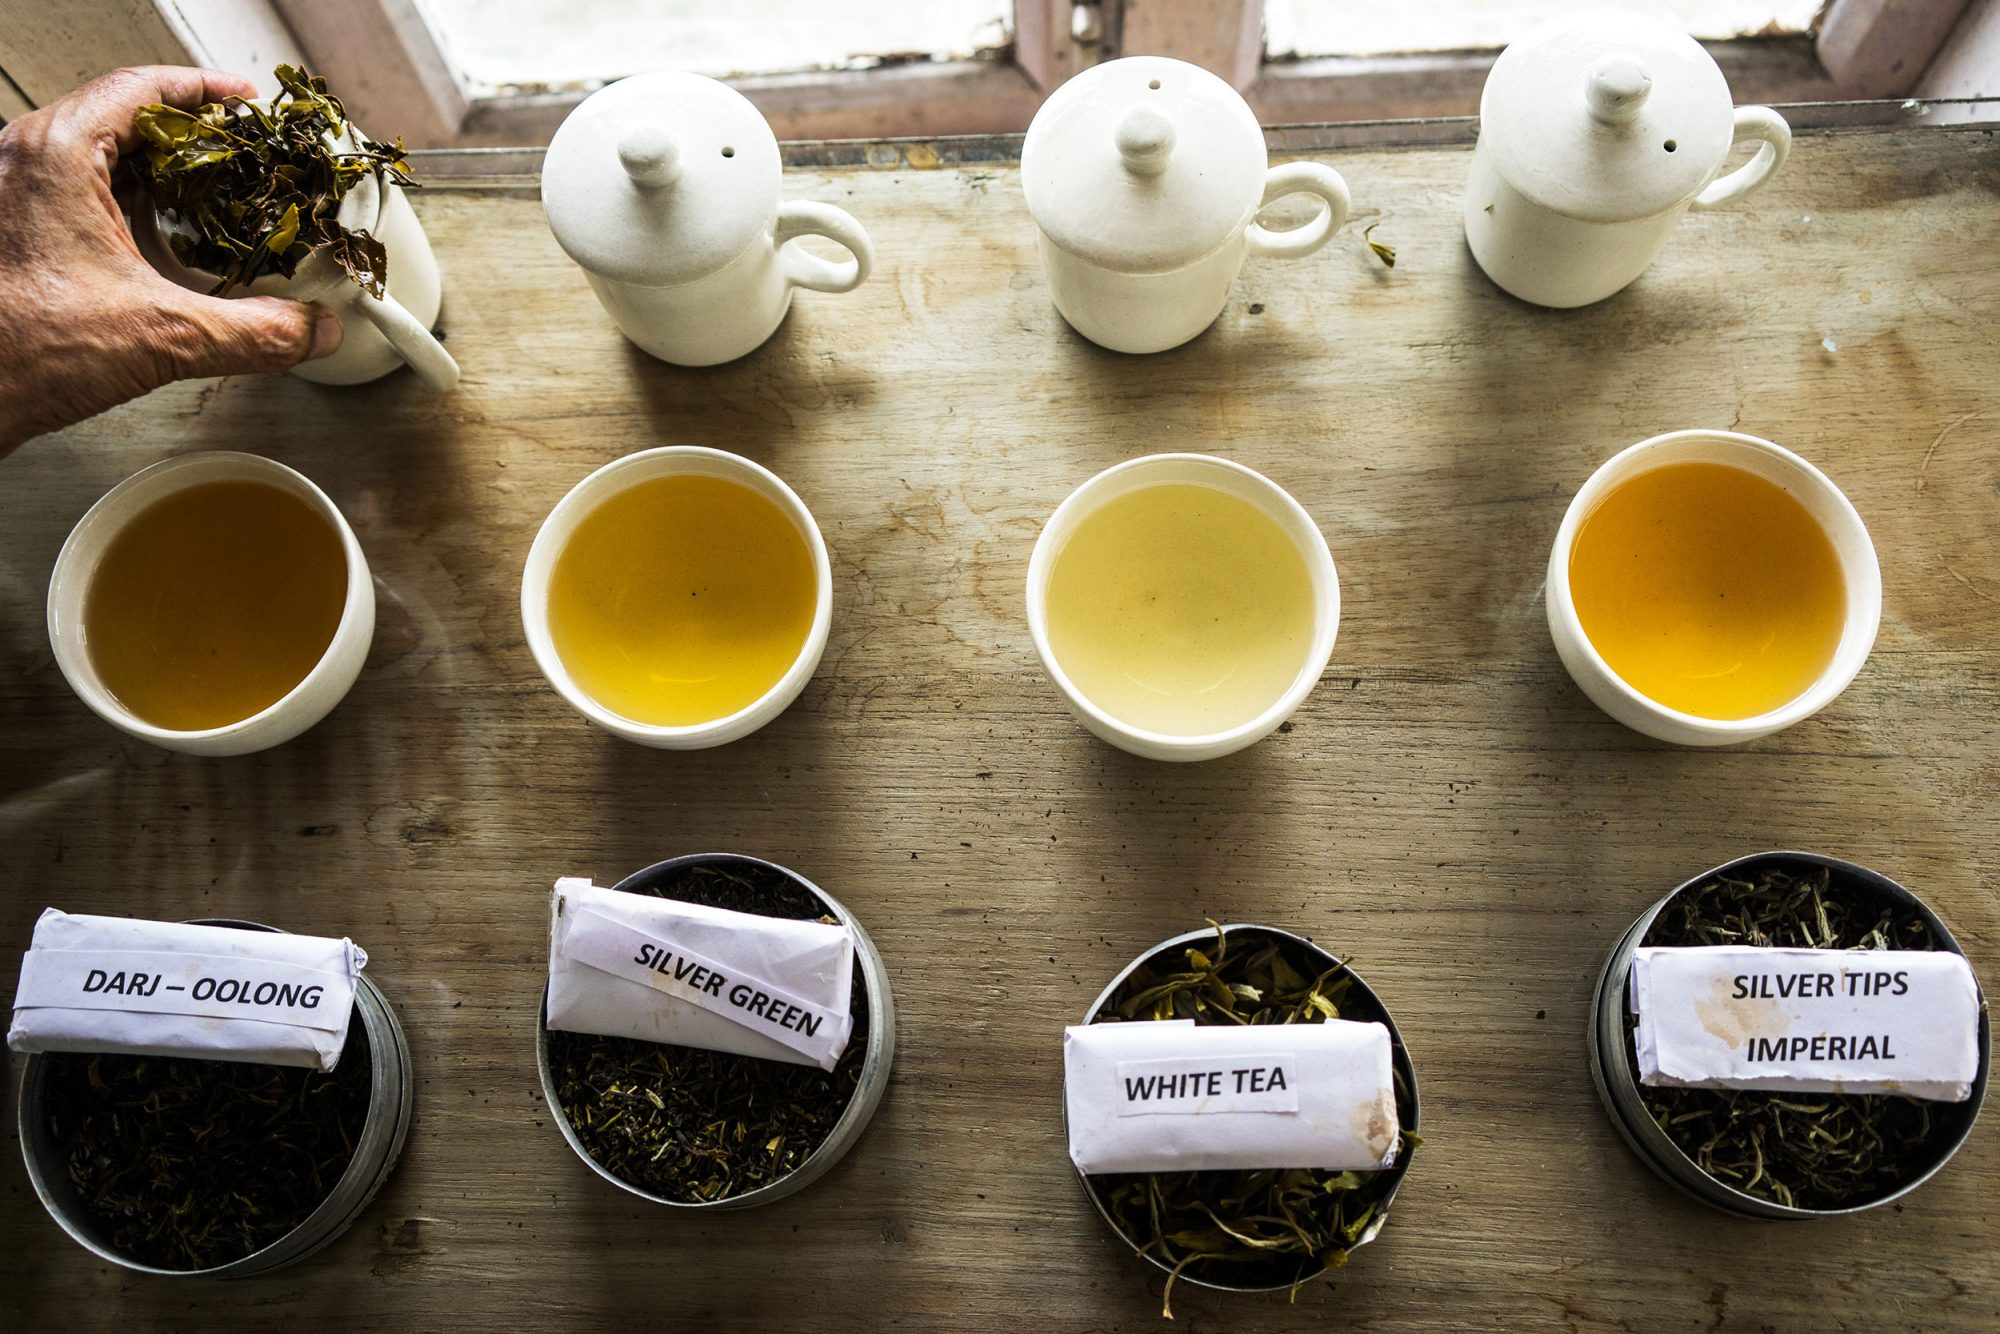 EC: 7 Tea Shops That Will Convert Even the Most Hardcore Coffee Snob